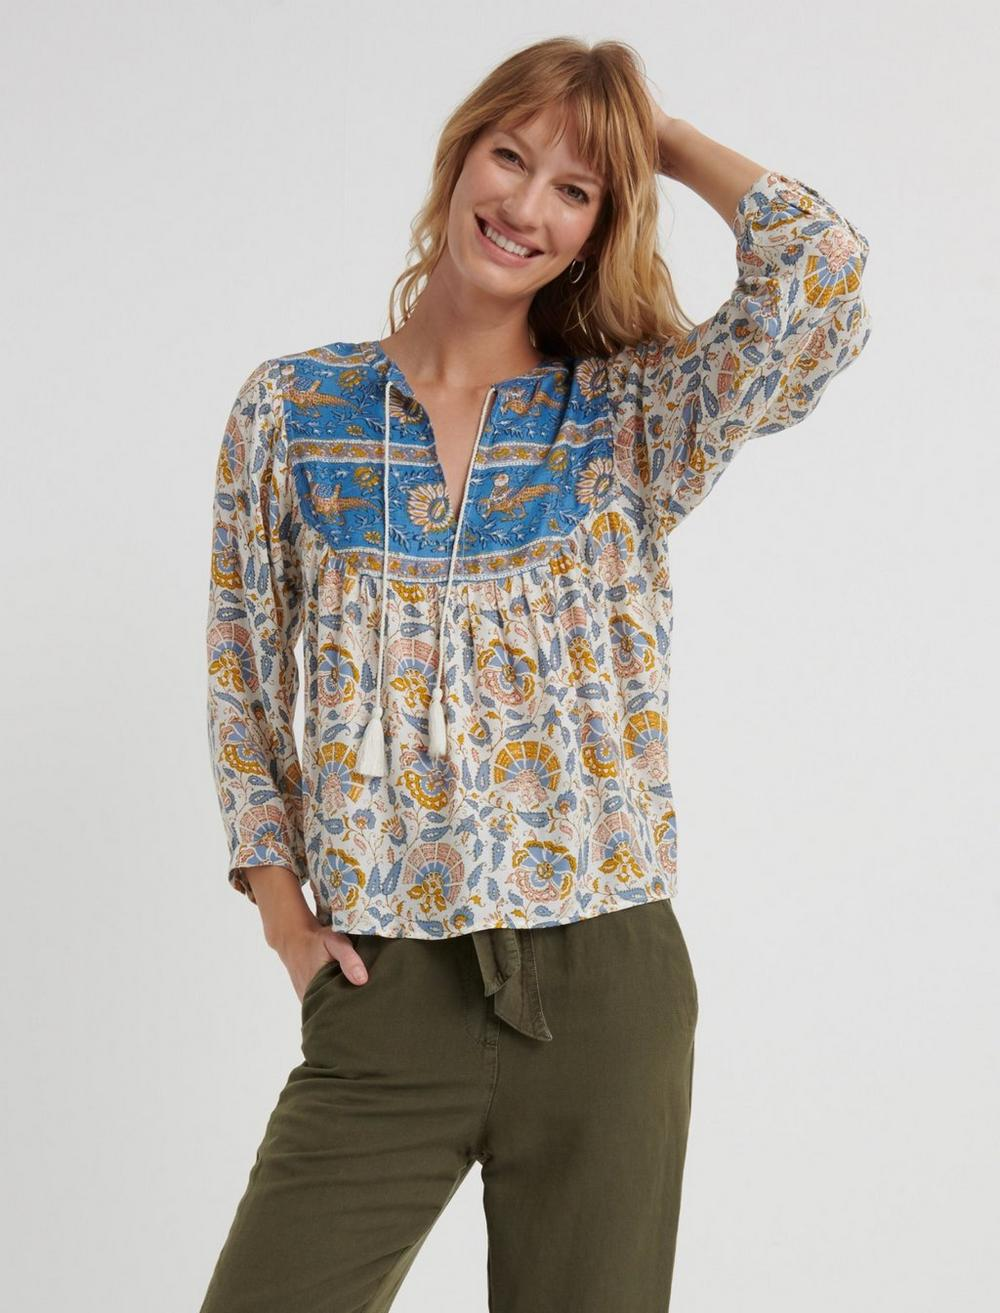 Women's 70s Shirts, Blouses, Hippie Tops Lucky Brand Printed Evelyn Peasant Top Size XS in Blue Multi $13.99 AT vintagedancer.com